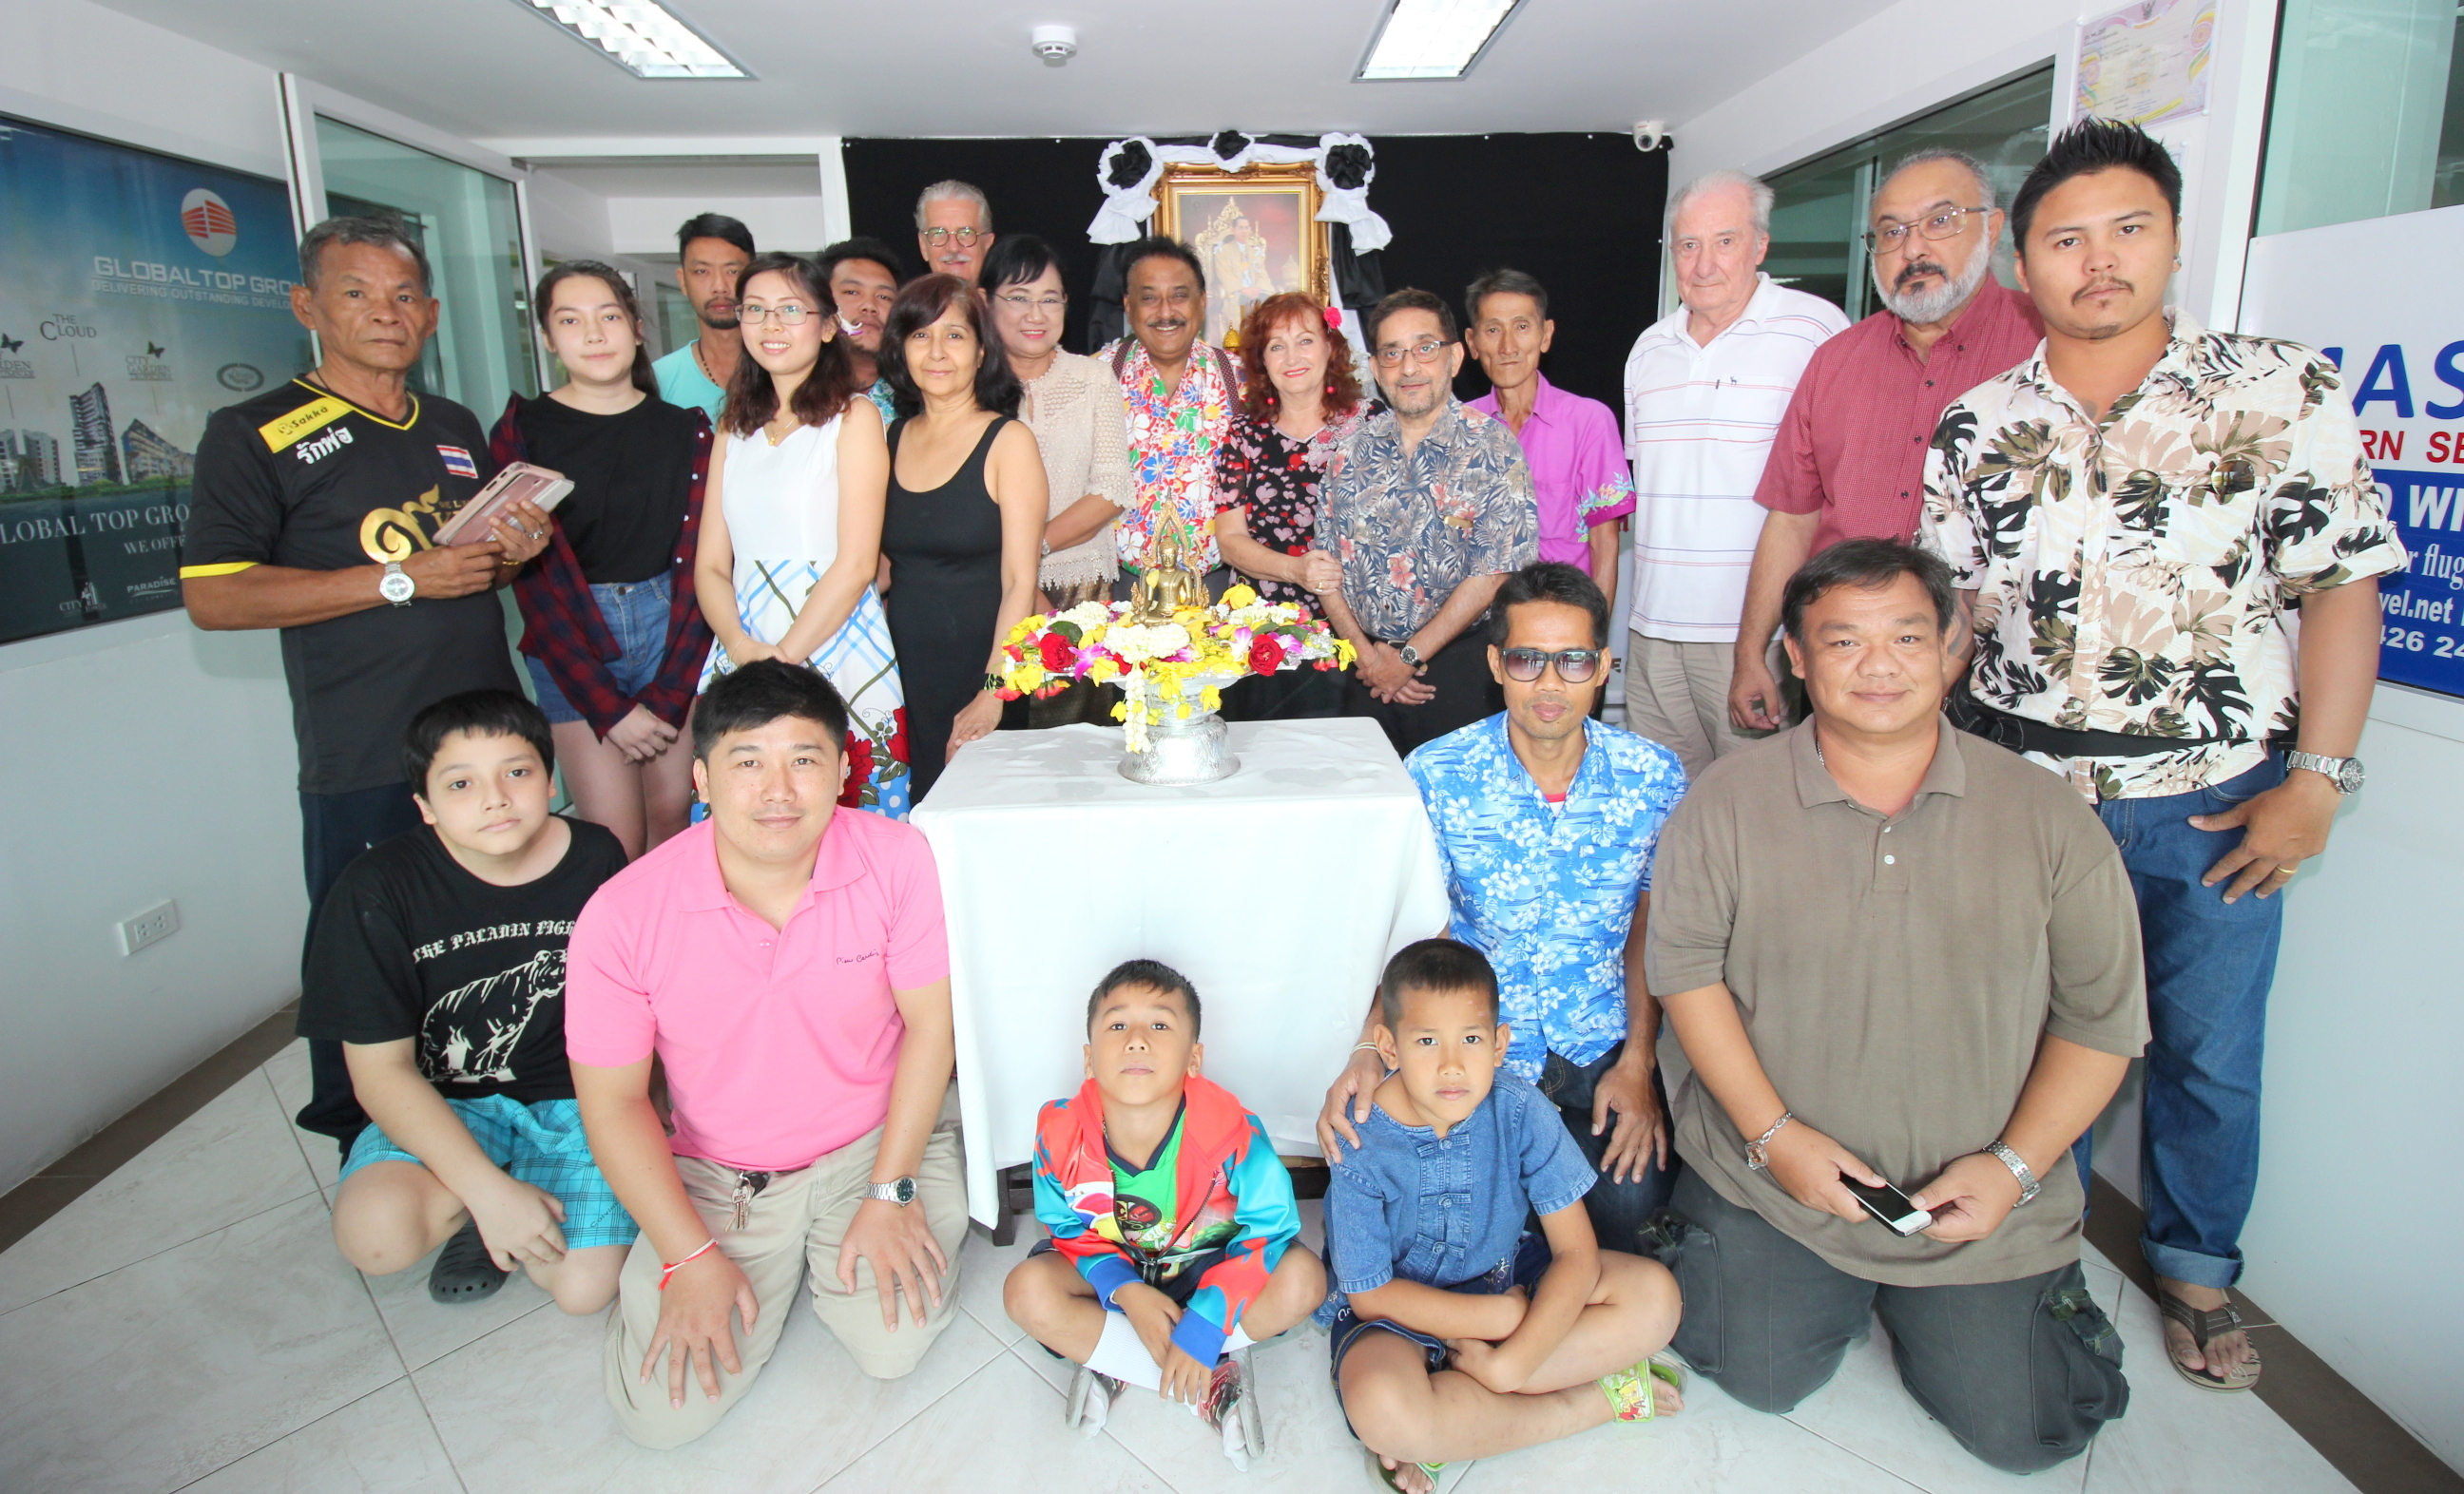 The Pattaya Mail familygather for a group photograph after the ceremonies.